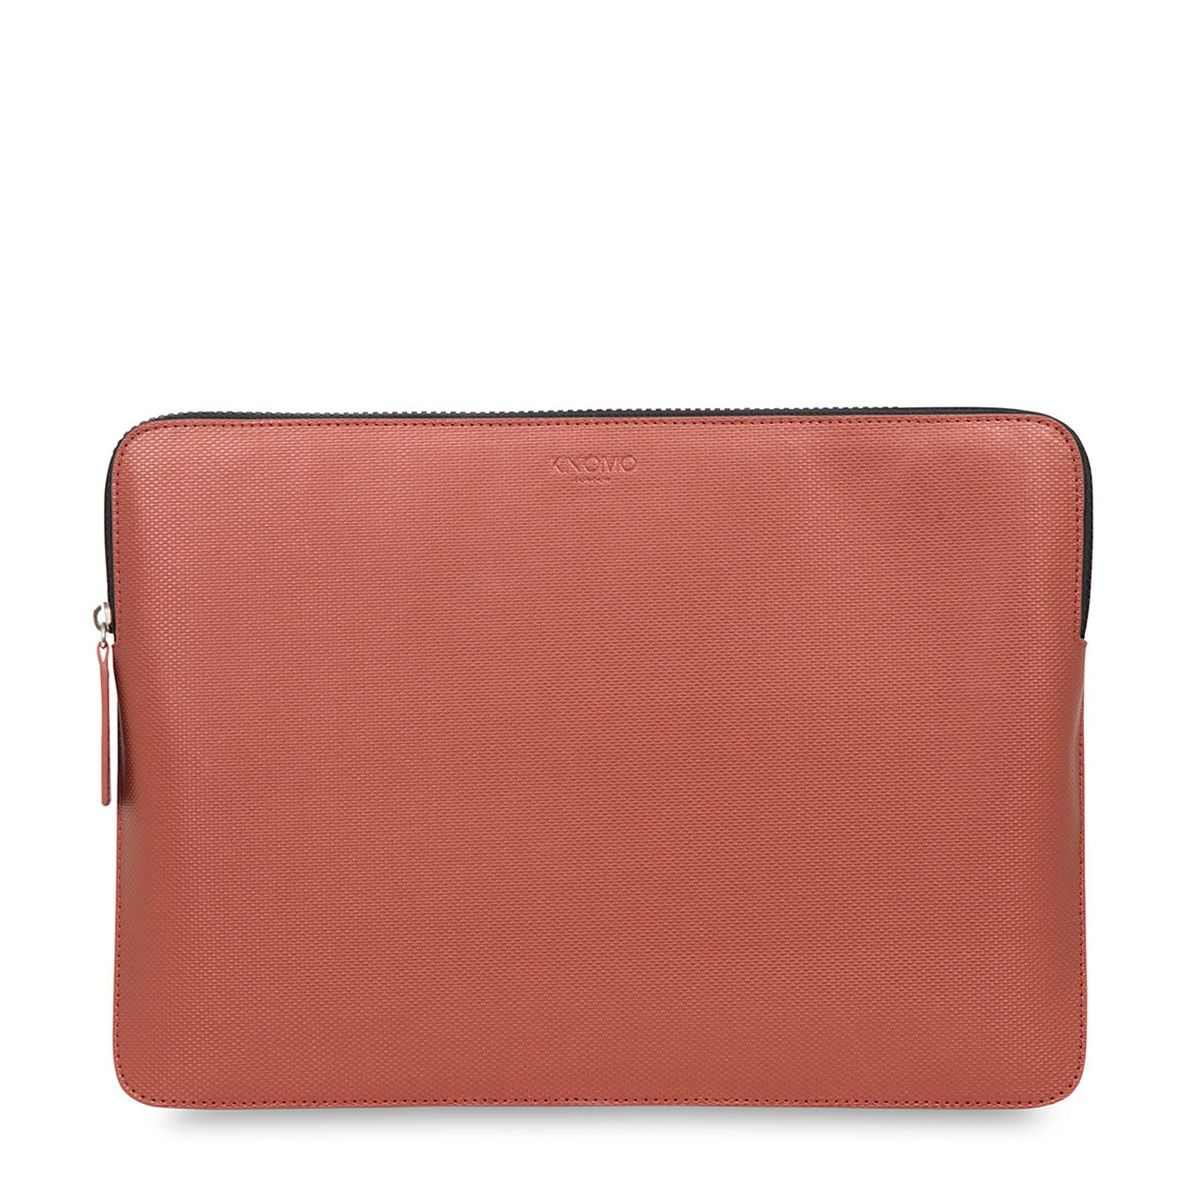 Knomo Laptop Sleeve Embossed Copper 13 inch